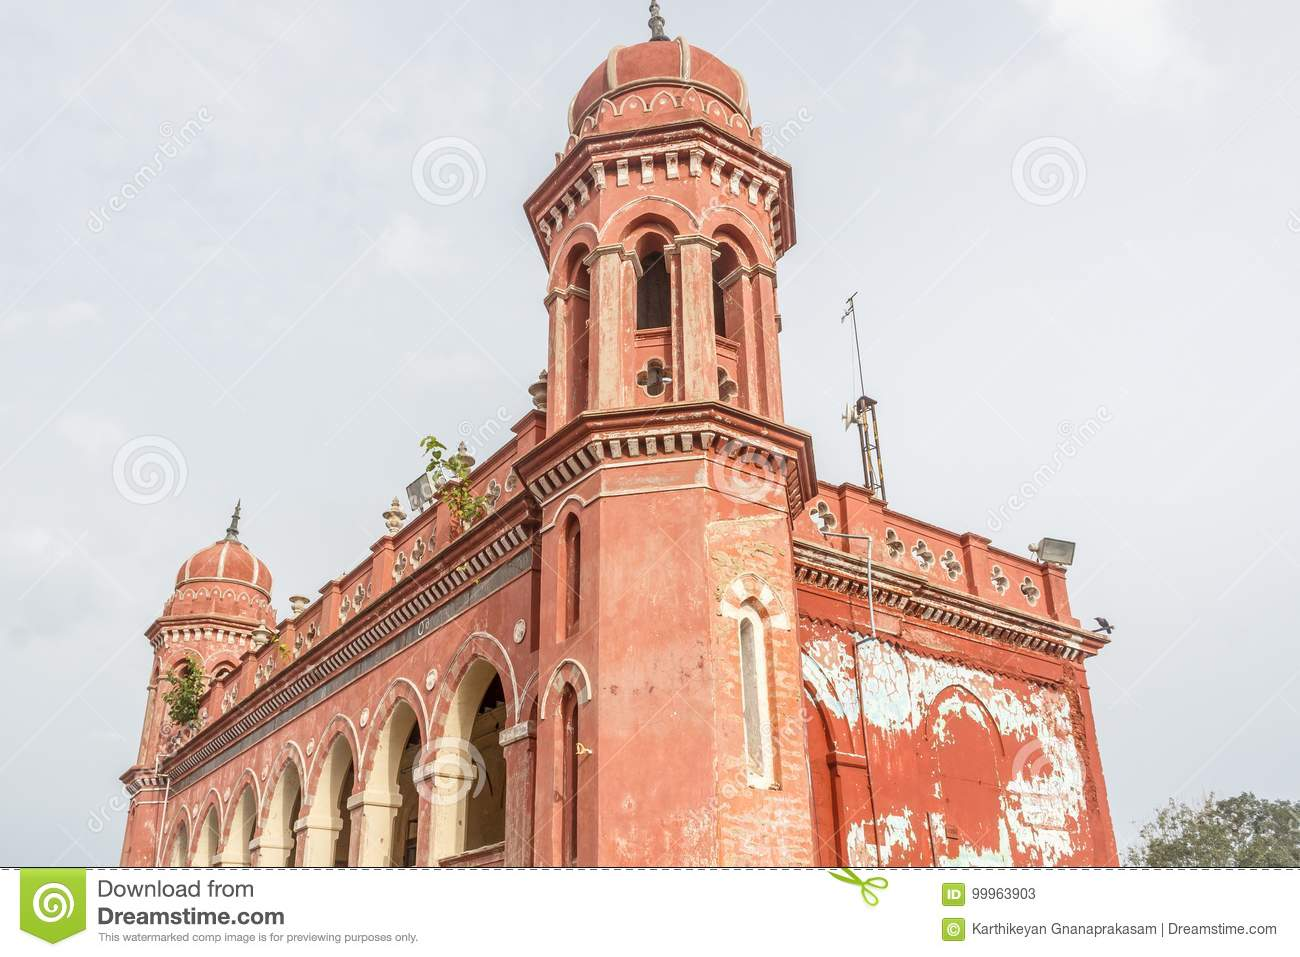 famous ancient architecture. Download Abandoned Ancient Architecture Seen At A Famous Landmark  Central Railway Station,Chennai, Famous Ancient Architecture S